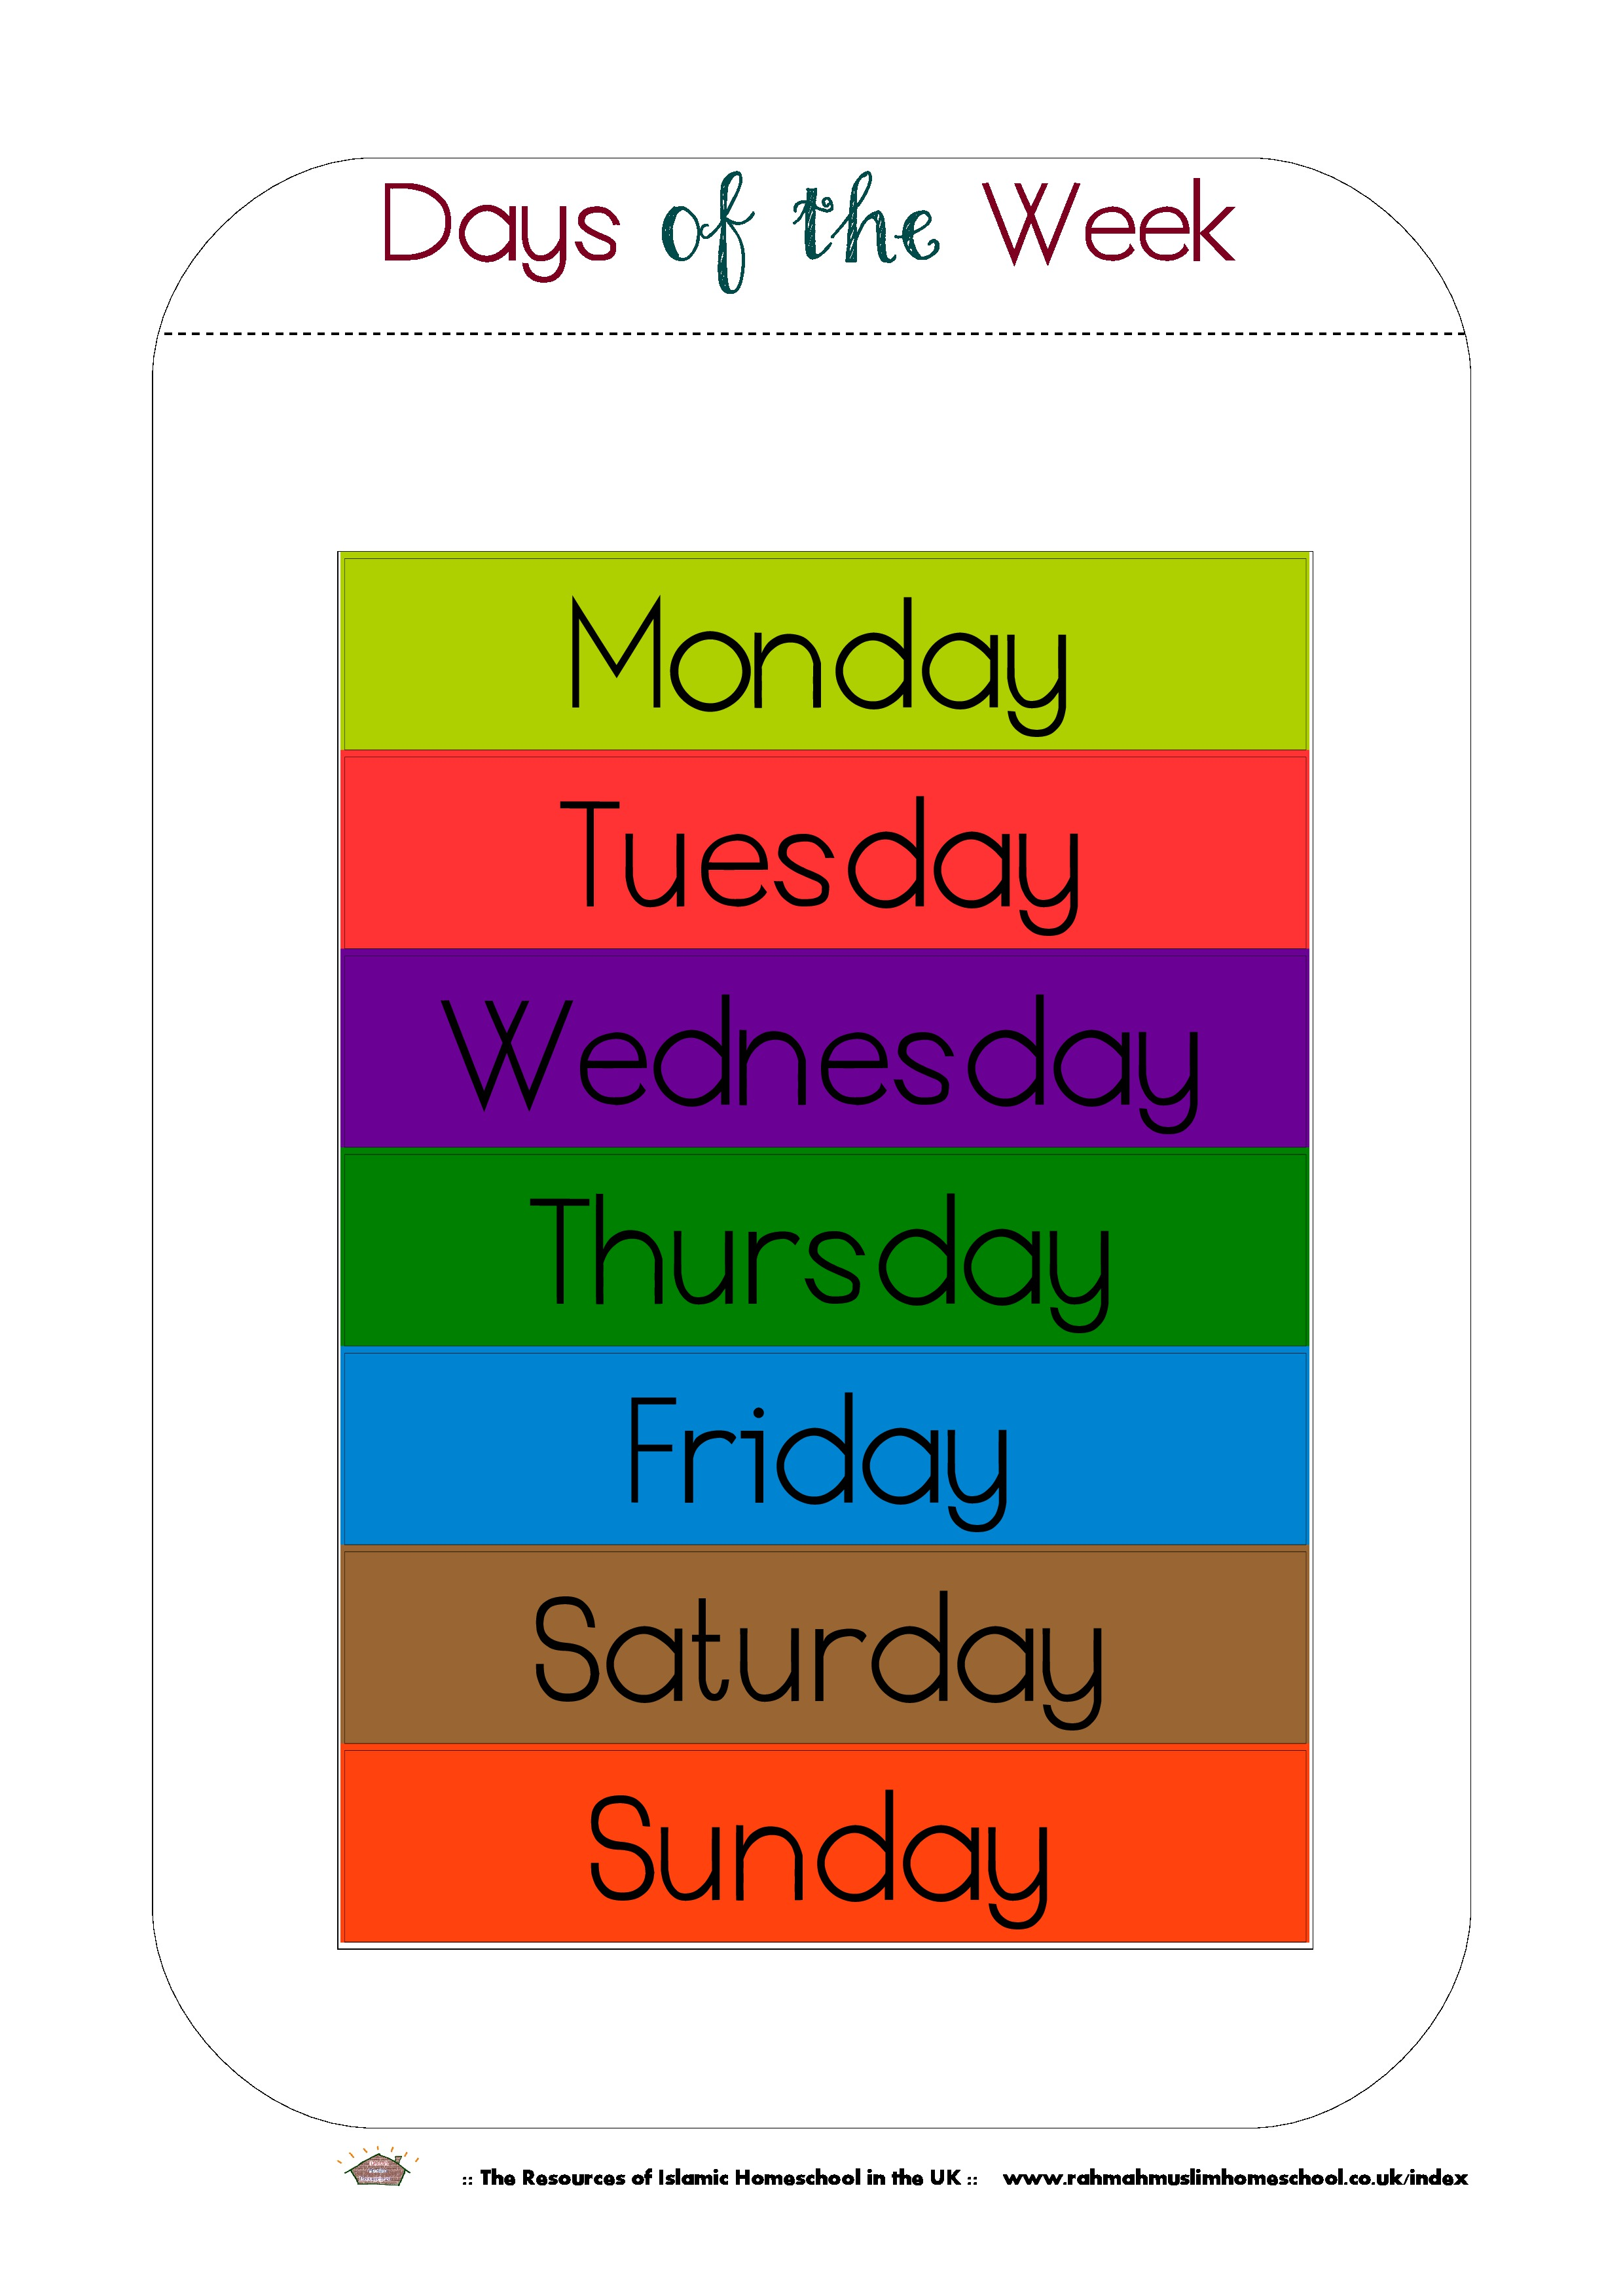 FREE Printable Days of the Week Workbook and Poster | The Resources ...